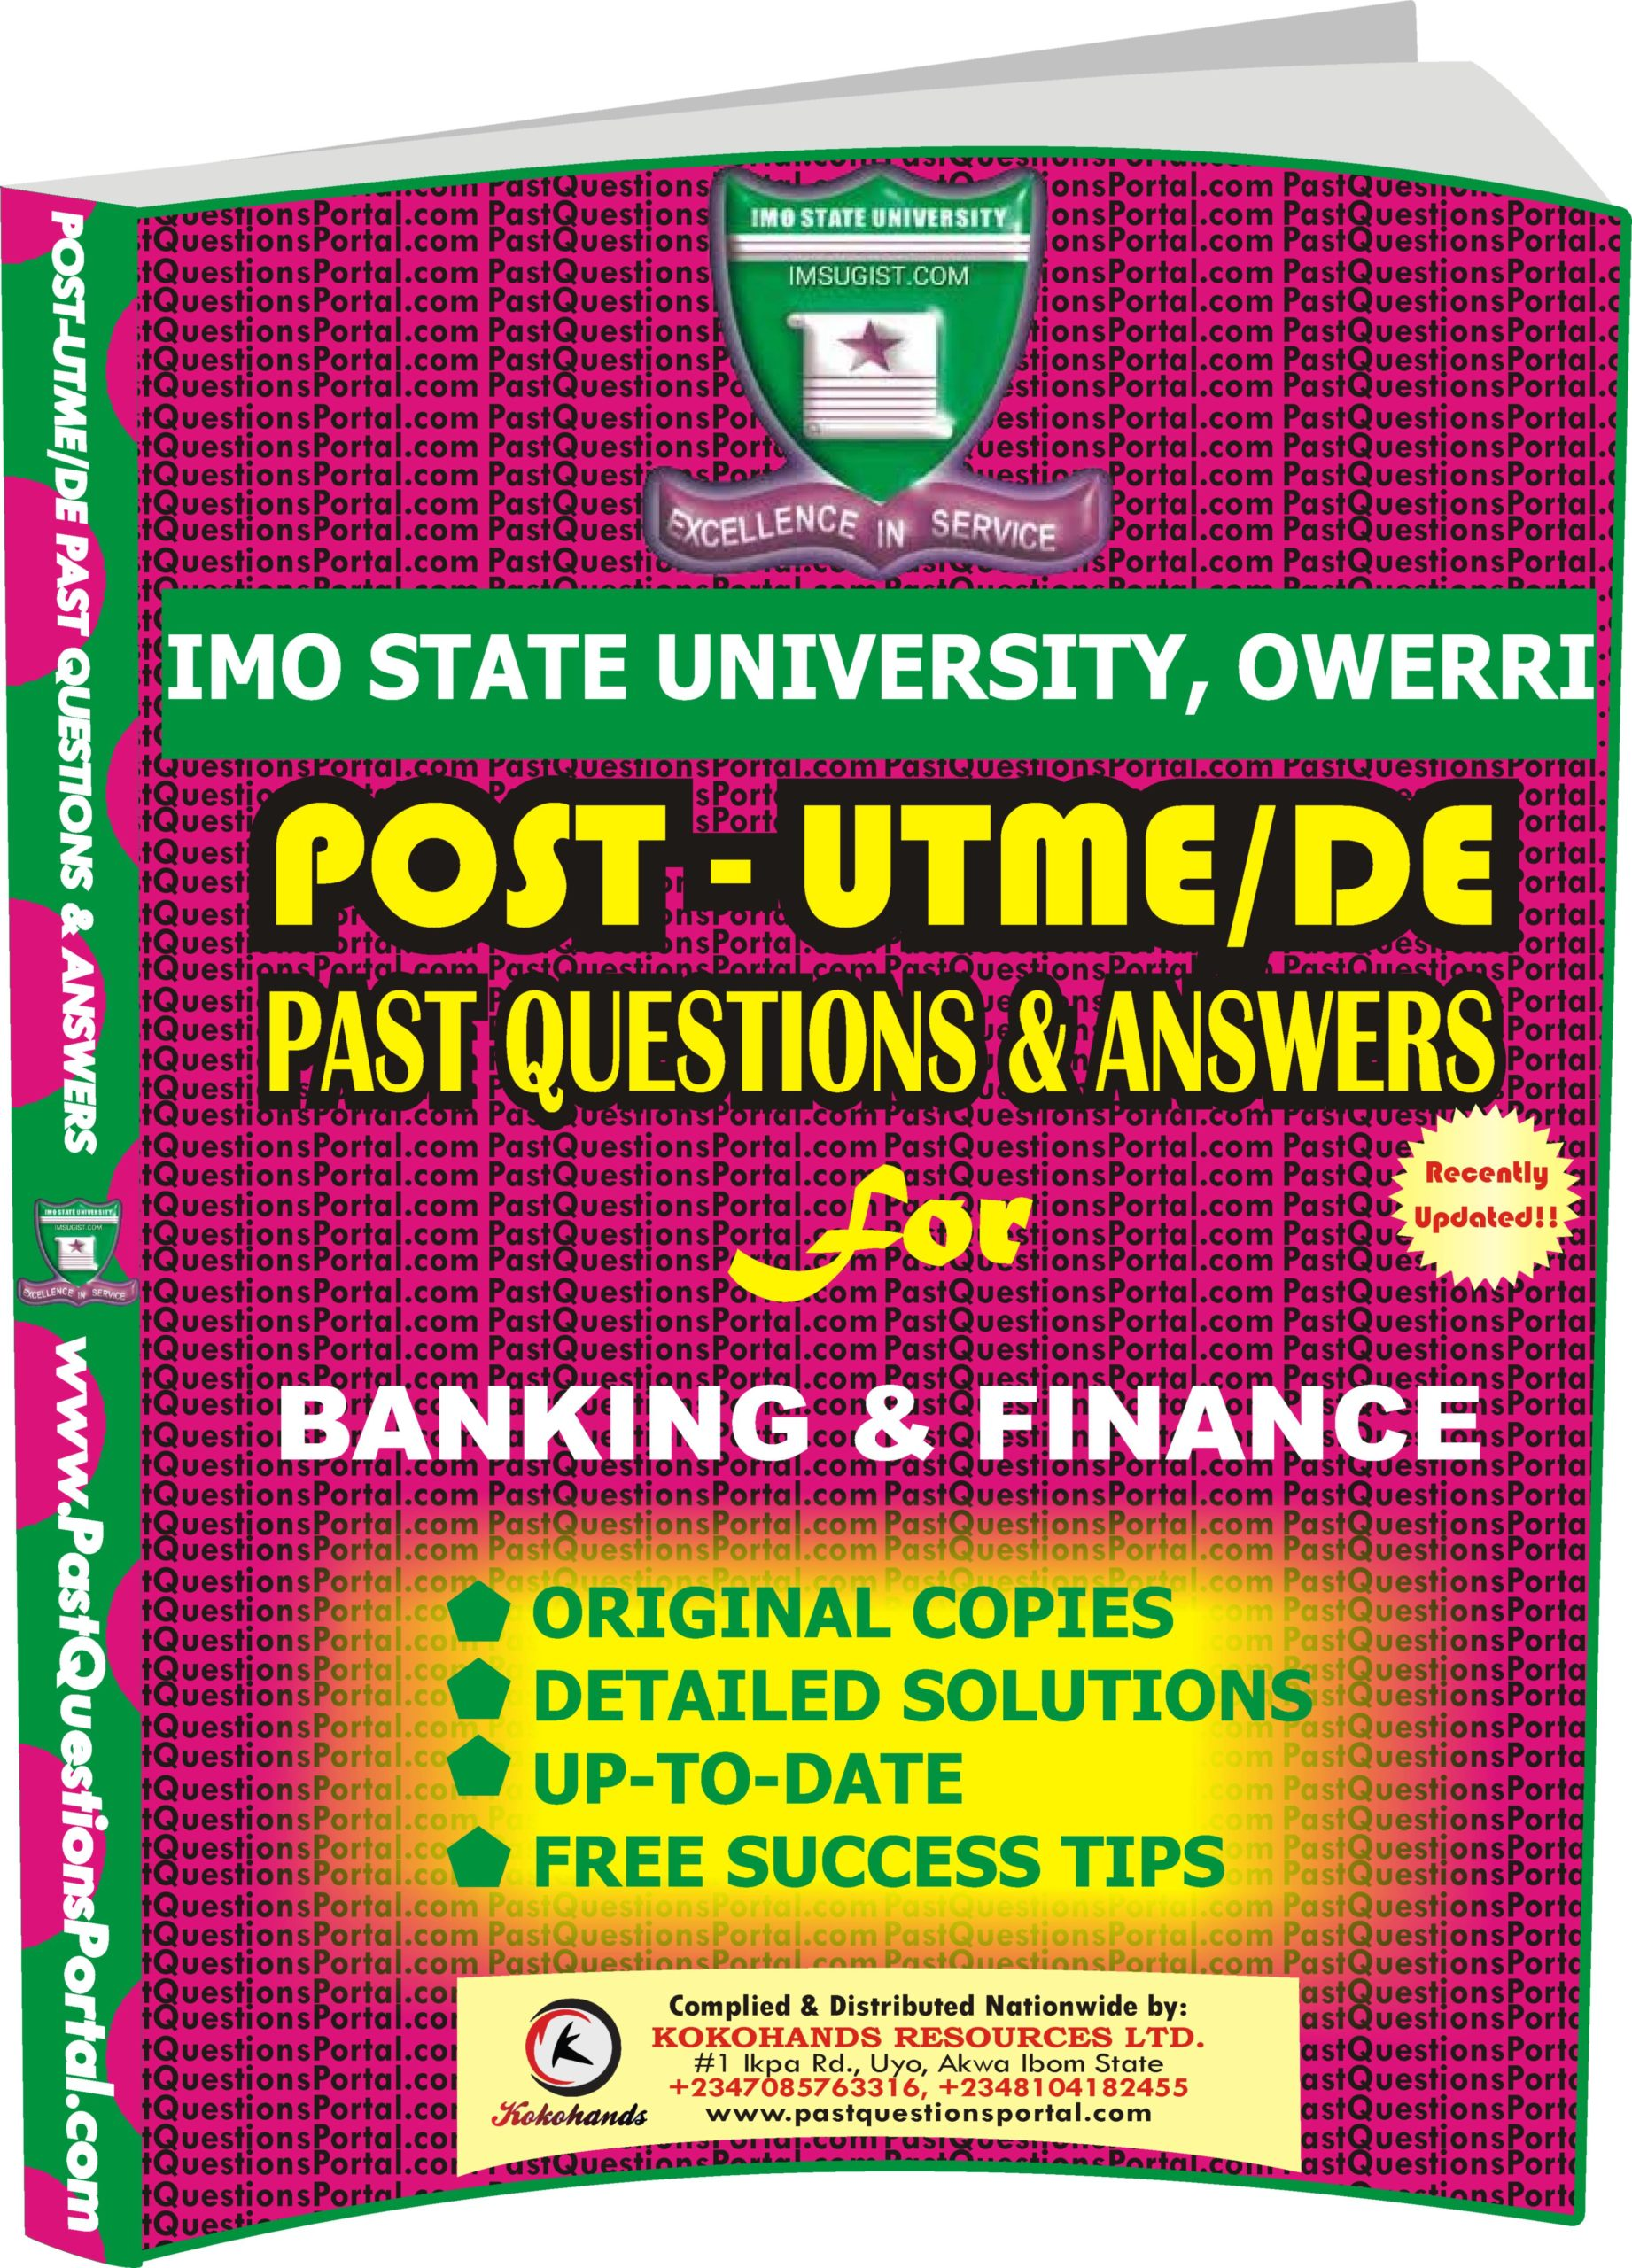 IMSU Post UTME Past Questions for BANKING & FINANCE